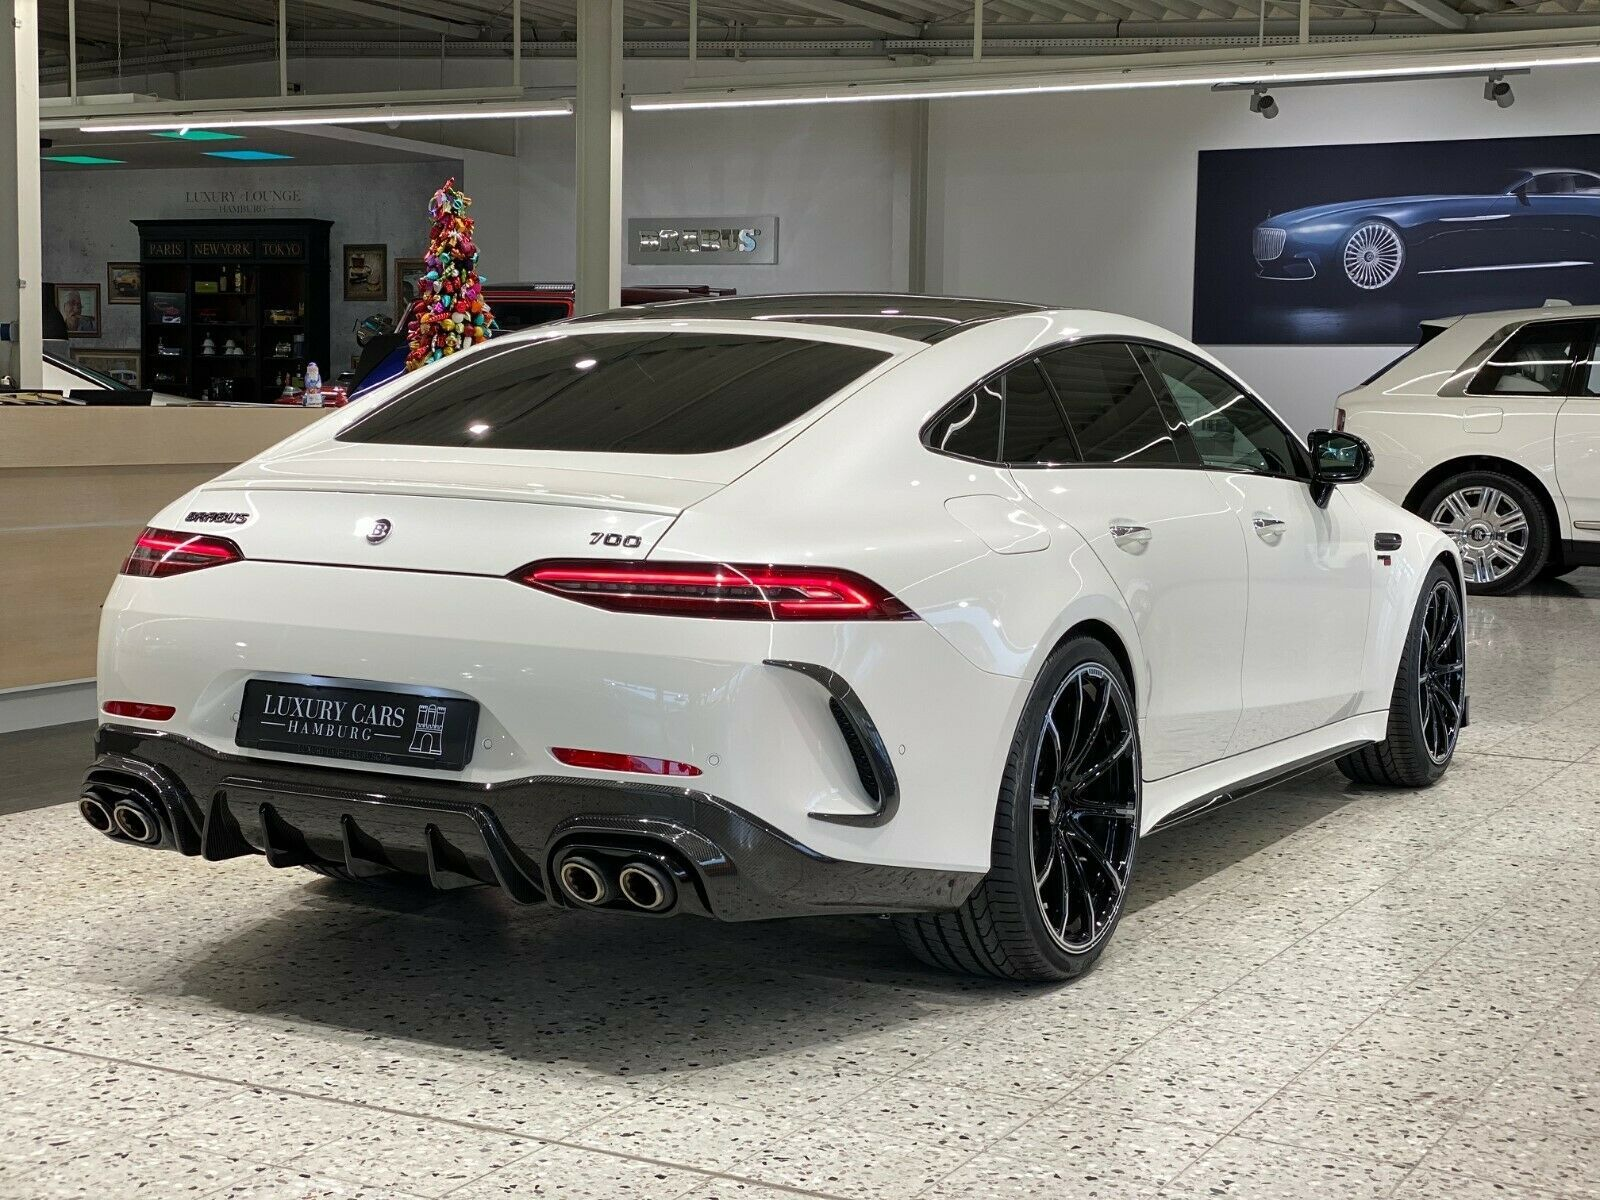 Mercedes Amg Gt Brabus 700 Luxury Cars Hamburg Germany For Sale On Luxurypulse In 2020 Mercedes Benz Amg Mercedes A45 Amg Mercedes Amg